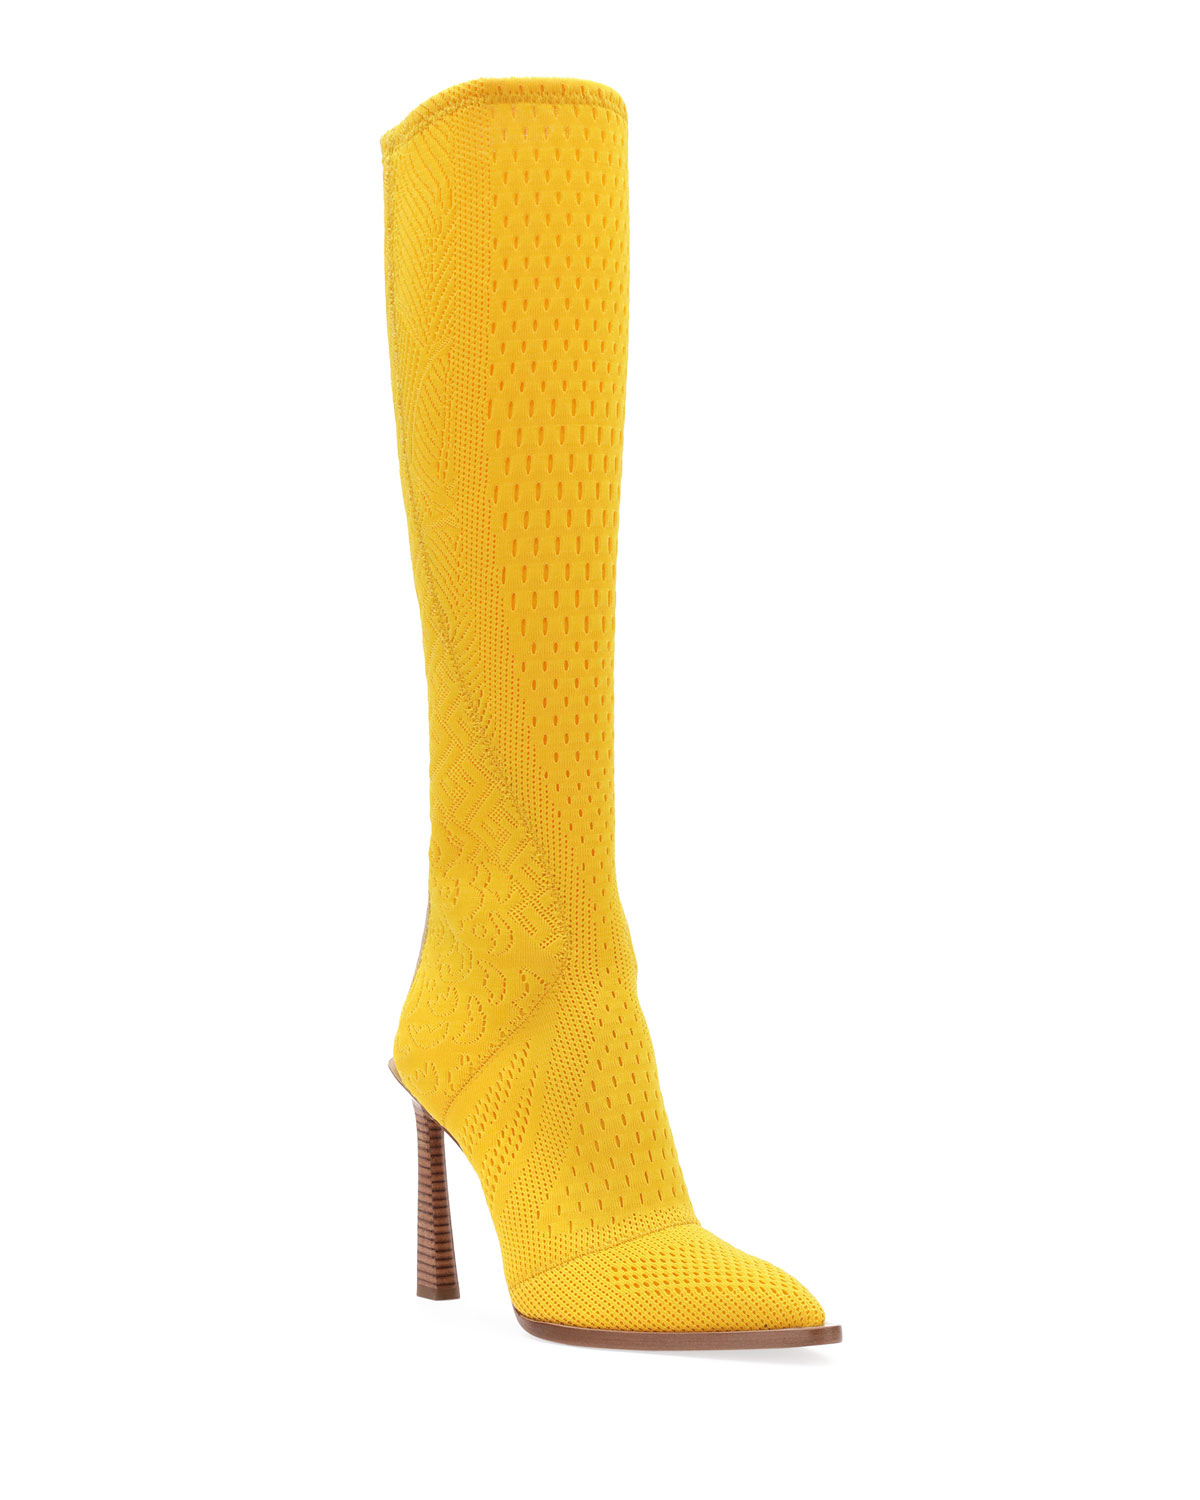 Knit To-The-Knee Boots